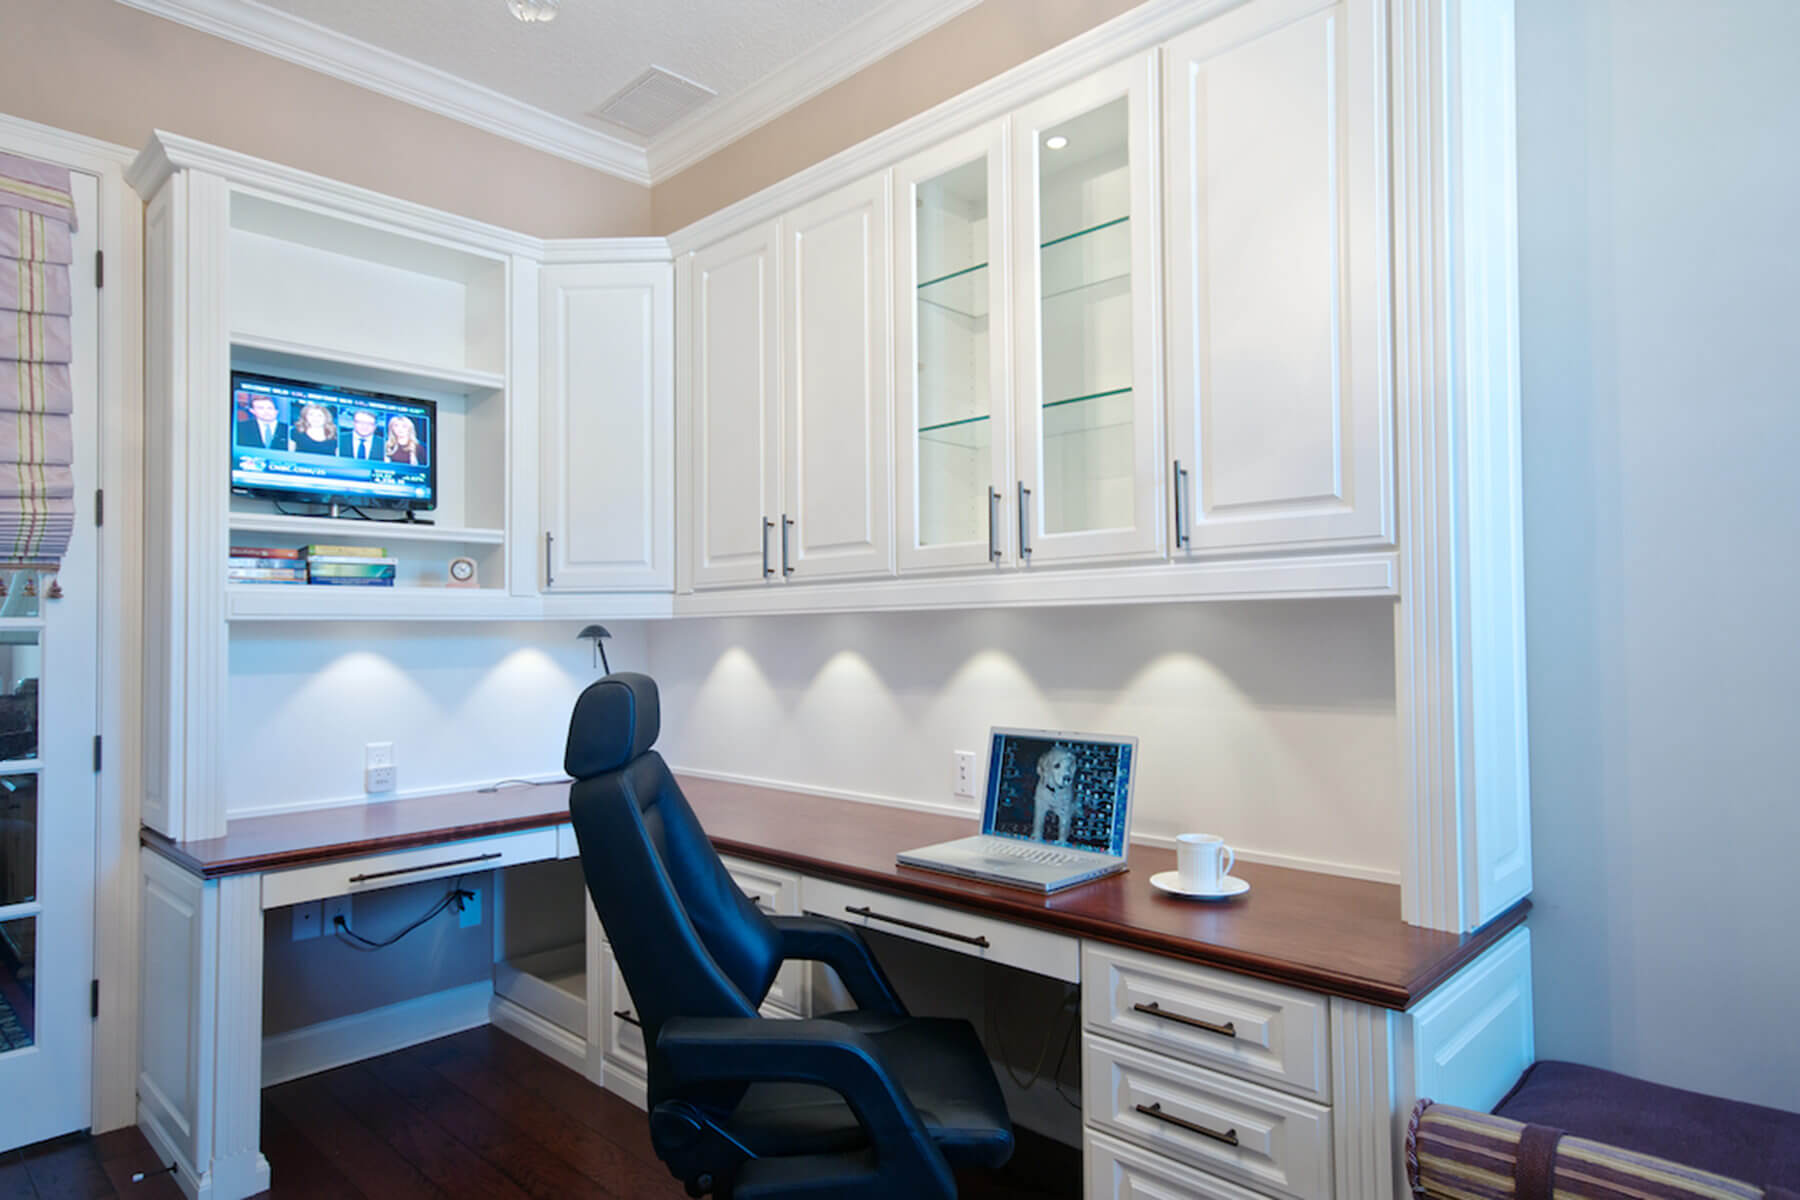 Highly functional l-shaped built-in desk and work station with built-in upper cabinets make this a great small home office that would work for a full time work-from-home space without requiring a large space.